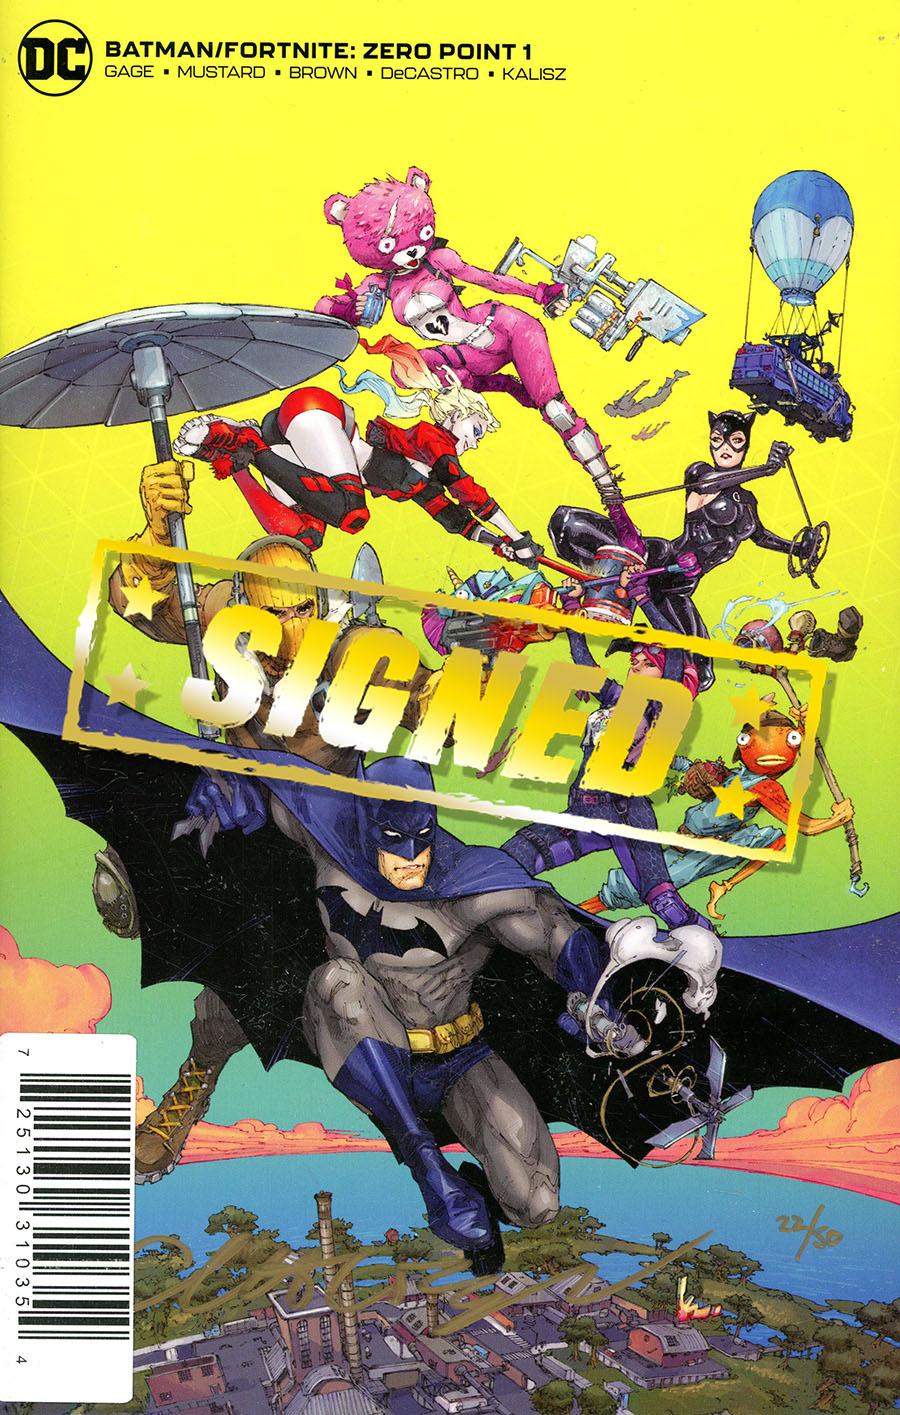 Batman Fortnite Zero Point #1 Cover E DF Gold Signature Series Signed By Christos Gage